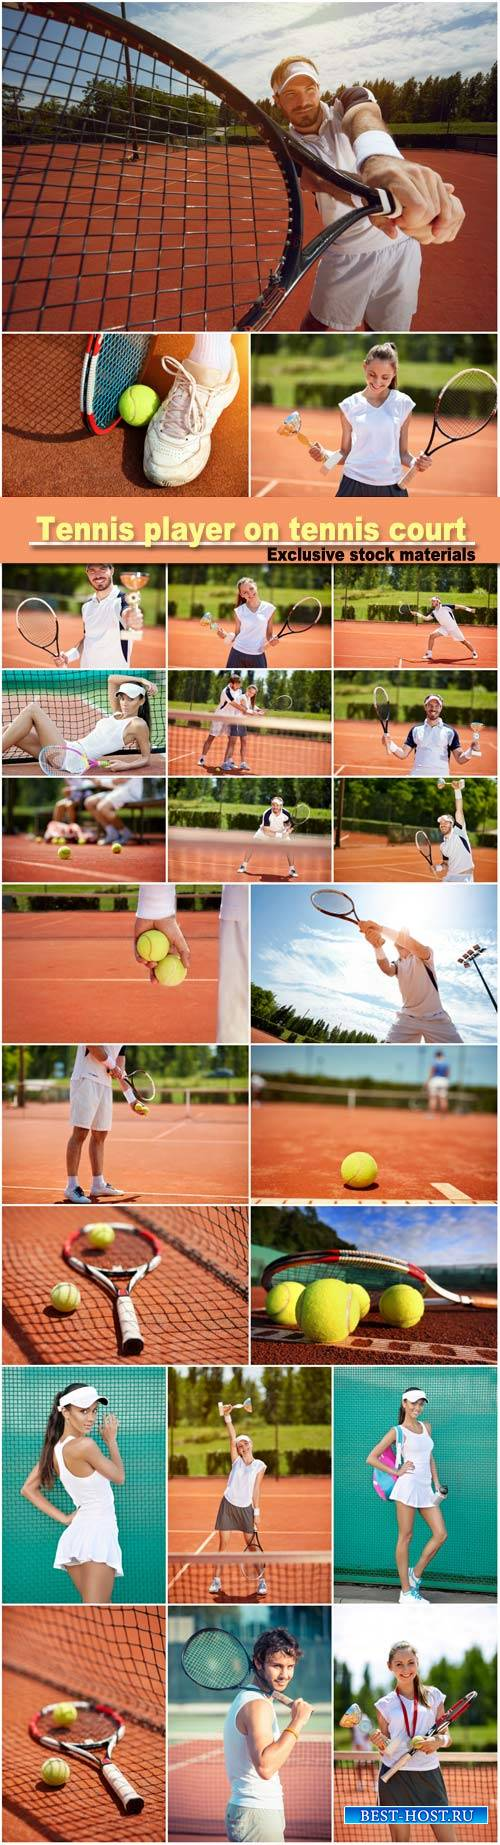 Tennis player on tennis court